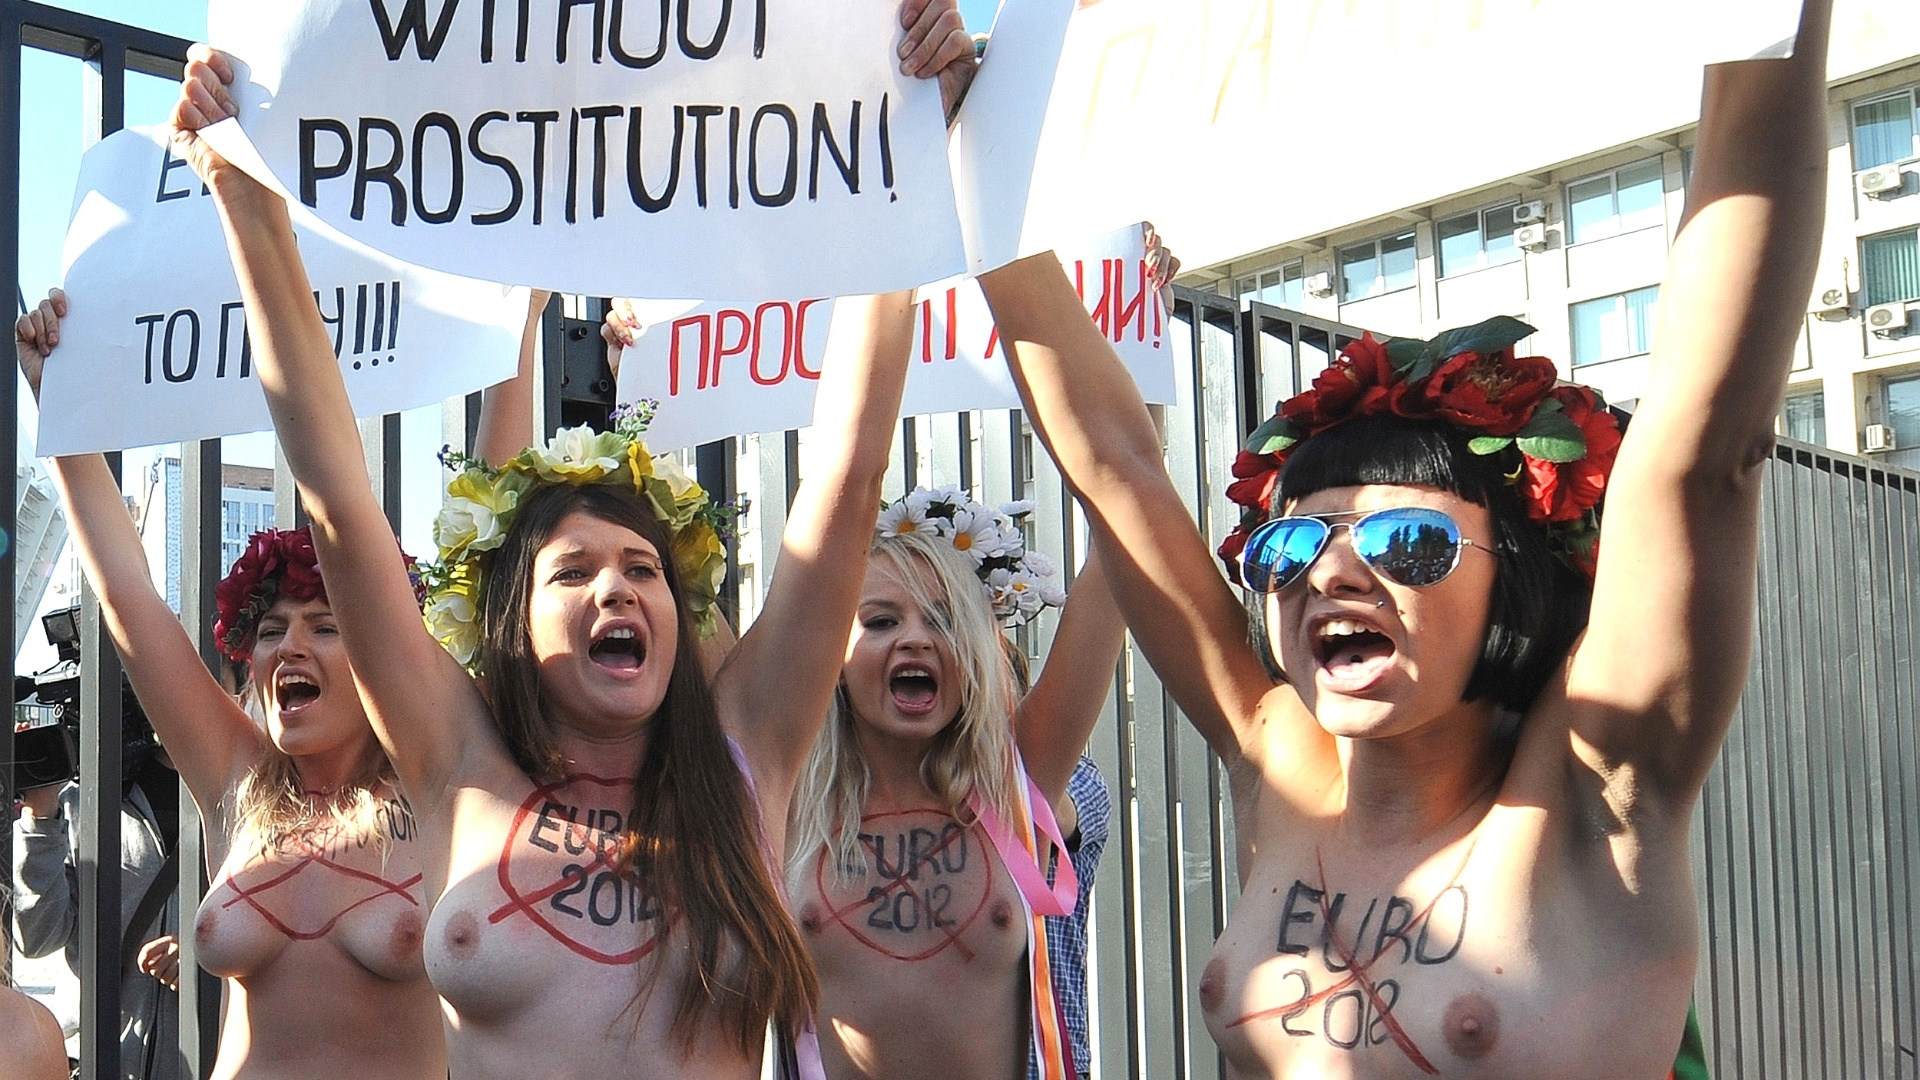 Grupo feminista Femen pediu  Uefa e s autoridades ucranianas para que fortaleam o combate  prostituio no pas